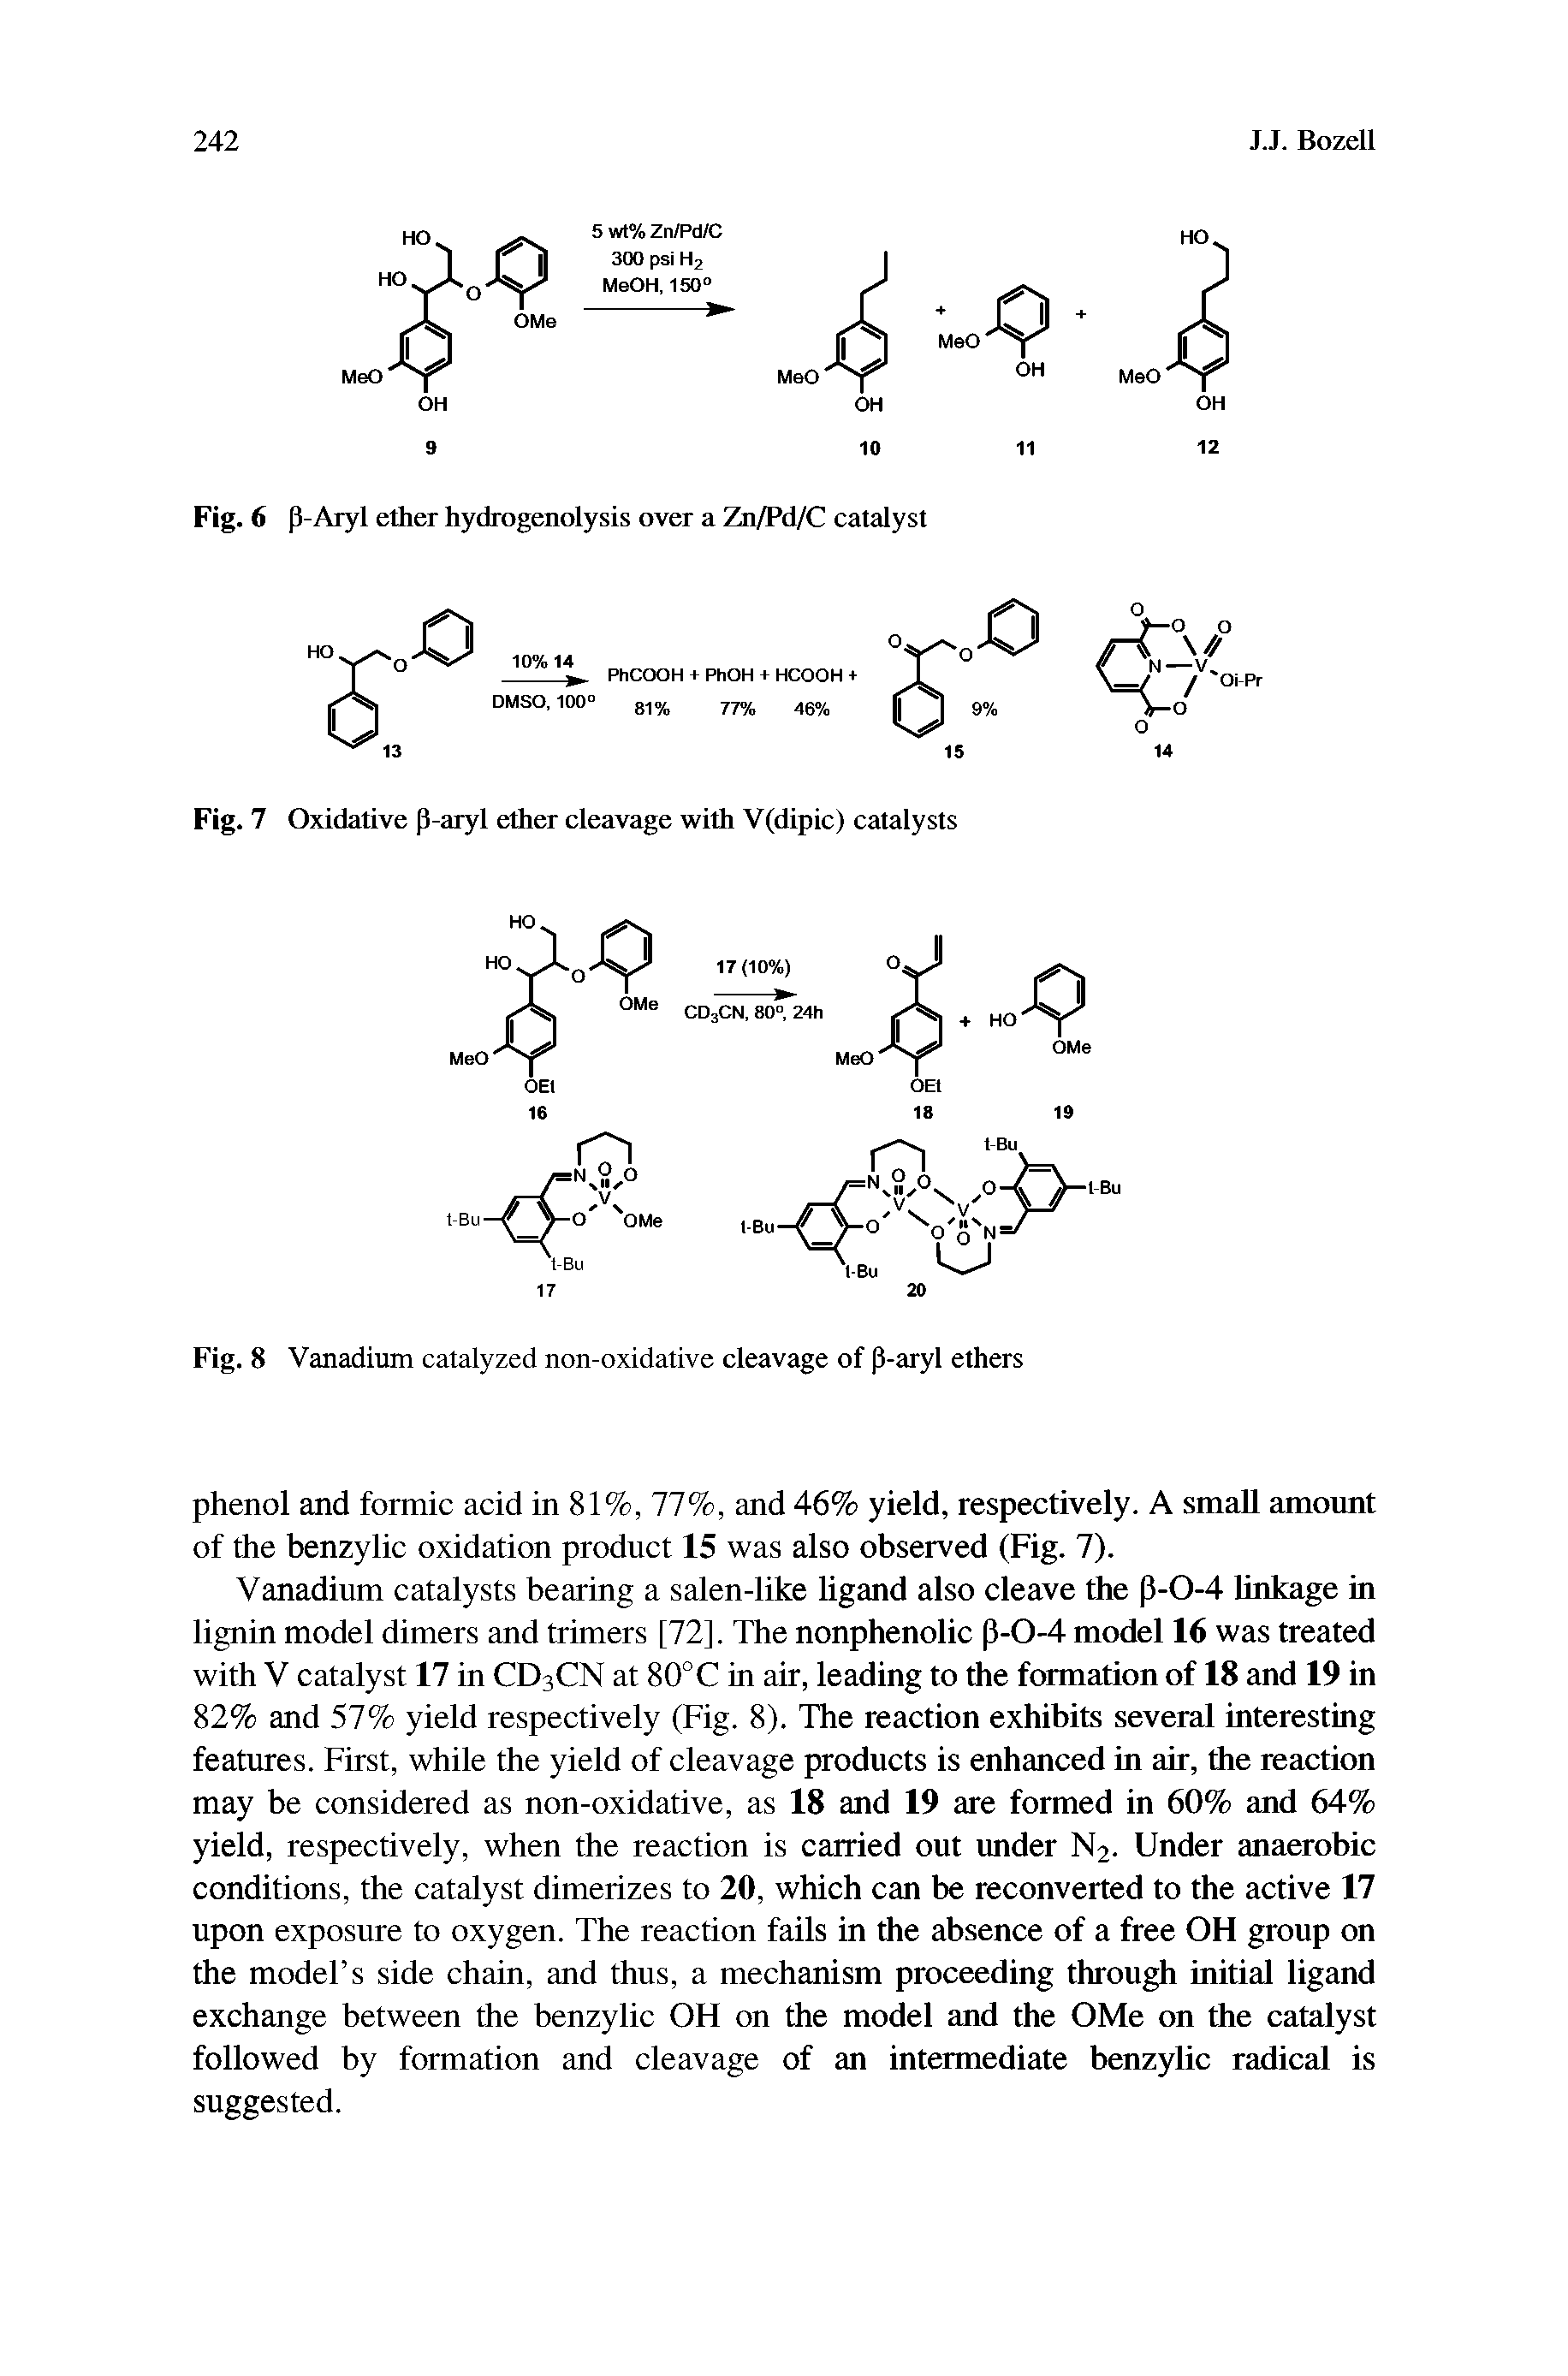 Fig. 7 Oxidative p-aryl ether cleavage with V(dipic) catalysts...